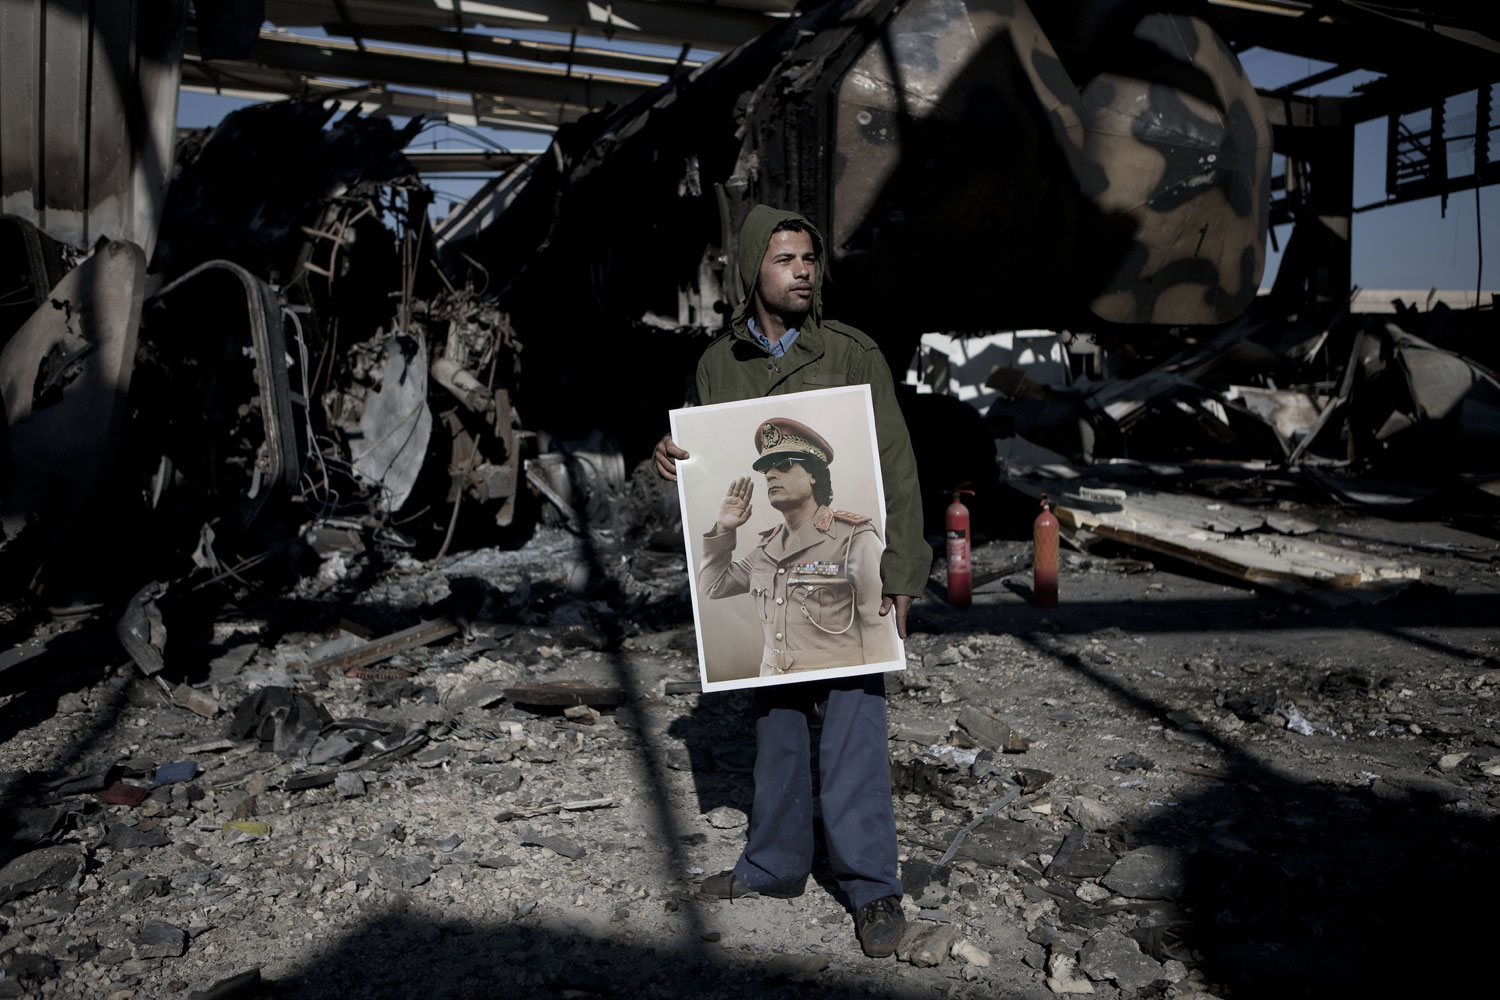 A Gaddafi supporter holds a portrait of the Libyan leader for the media during a tour of a building struck by missiles, March 22, 2011.